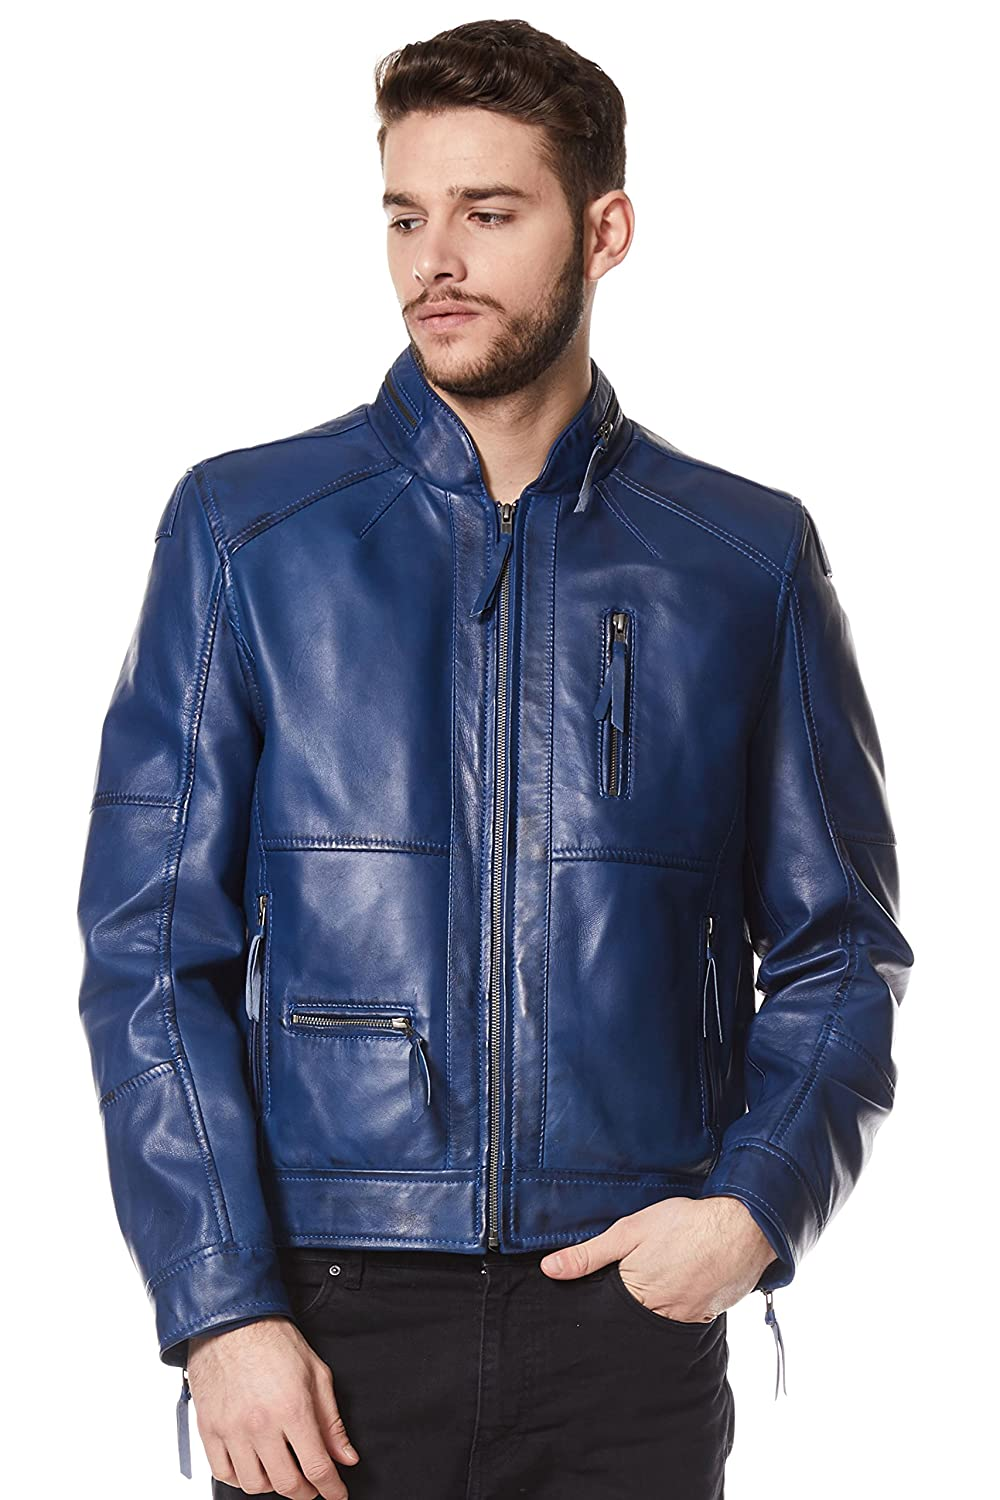 Men's 9056 Classic Style Blue Zipcollar Designer Wax Casual Soft Leather Jacket